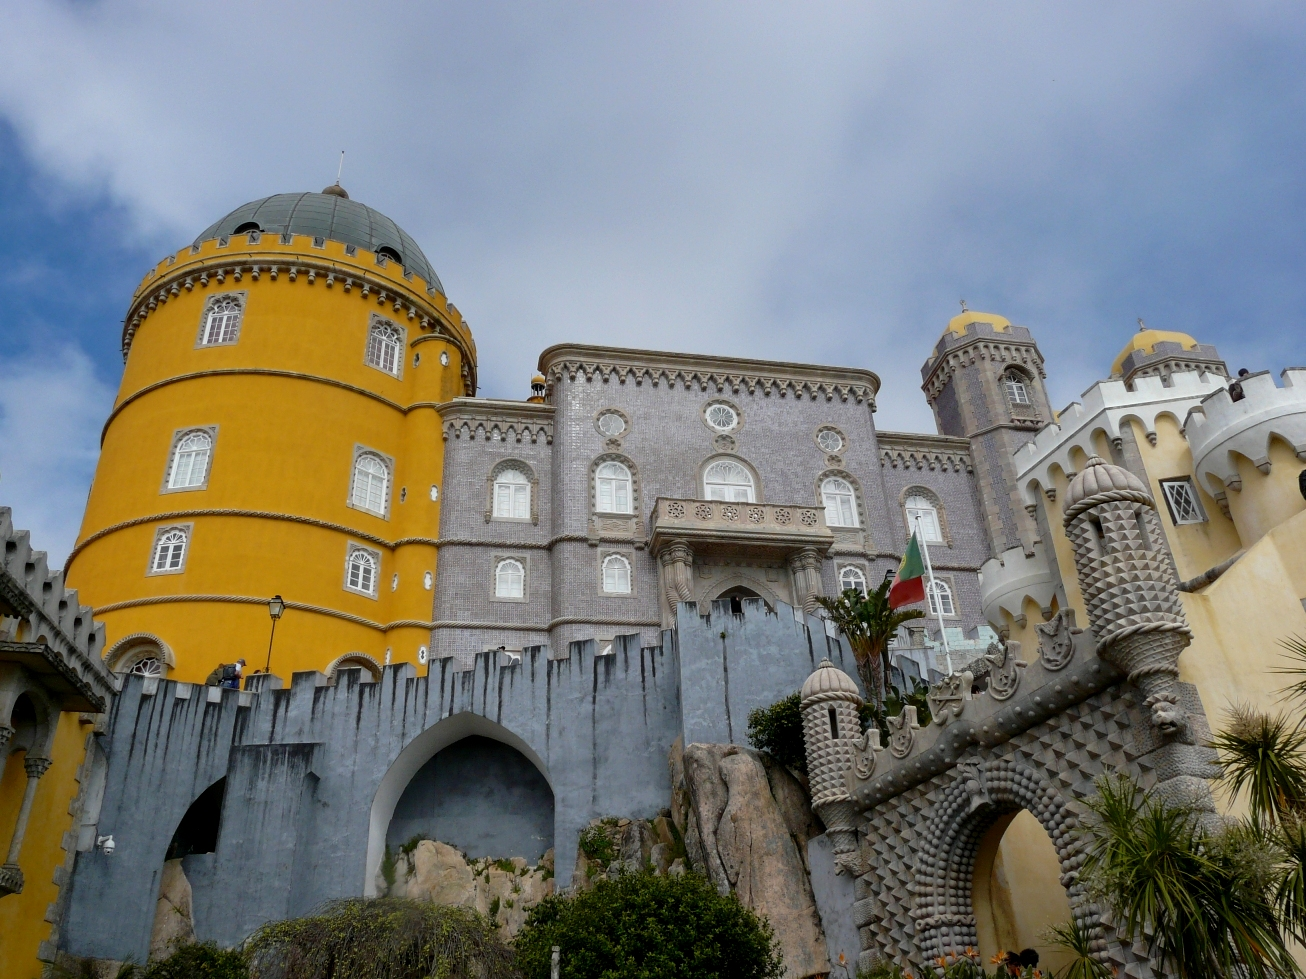 Picture 3, Pena Palace, Sintra, Portugal